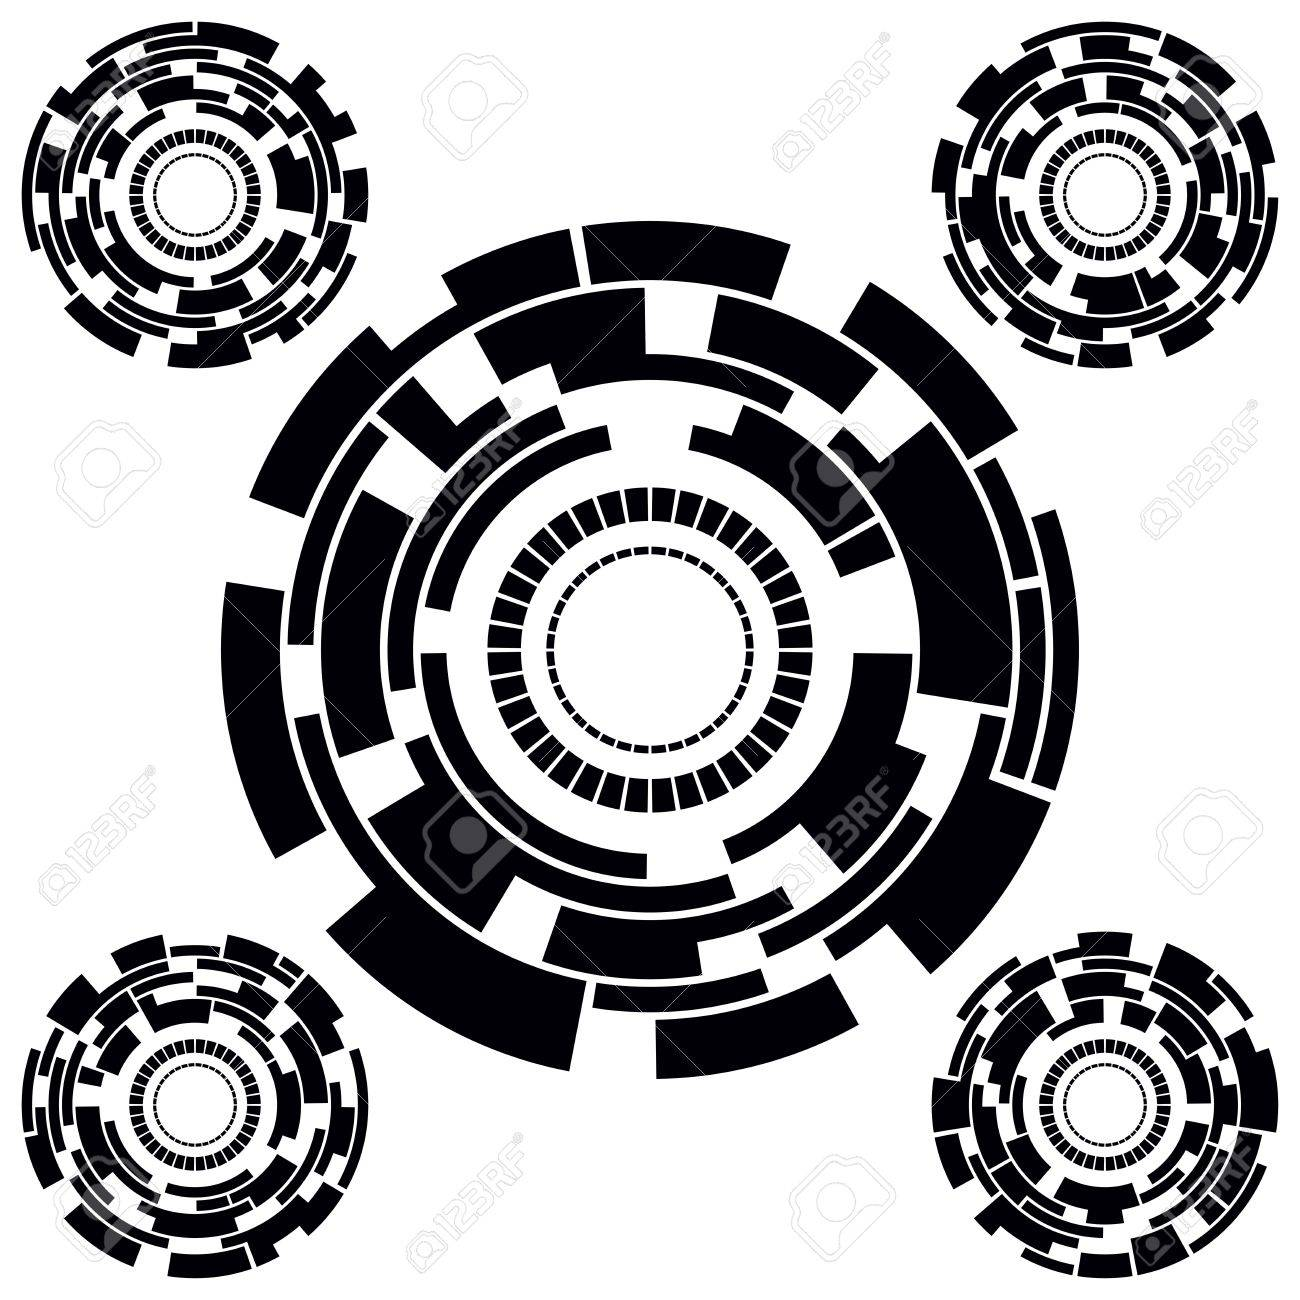 Set of Five Black and White Futuristic Circle Charts. Vector Illustration Stock Vector - 21194150